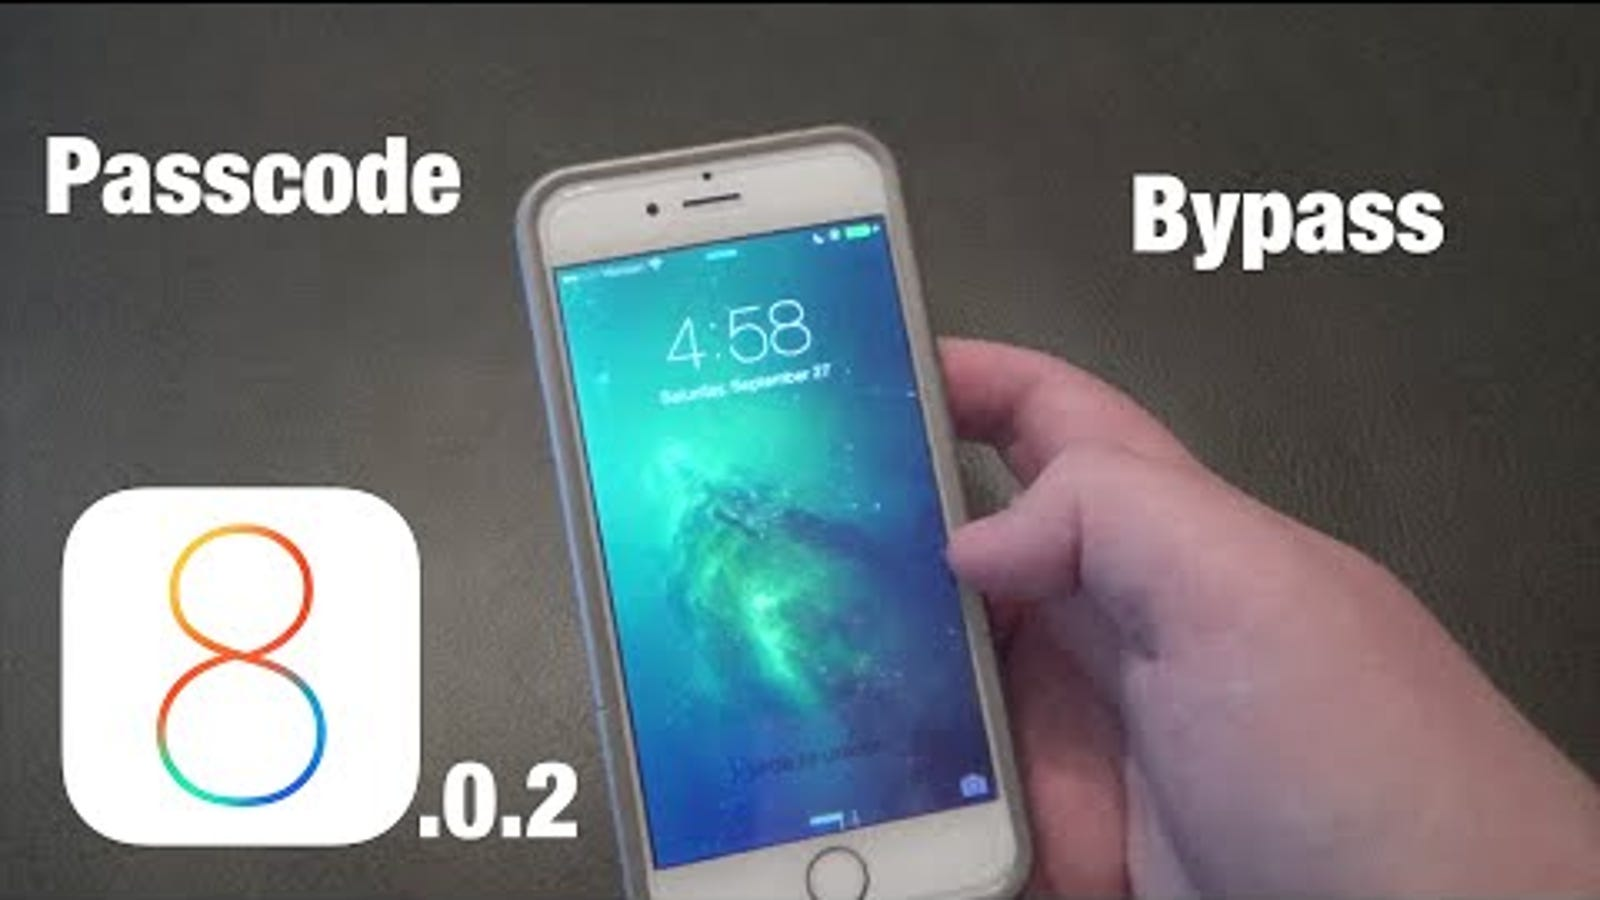 Alleged iOS 8 Passcode Bypass Appears to Be Bogus (Updated)